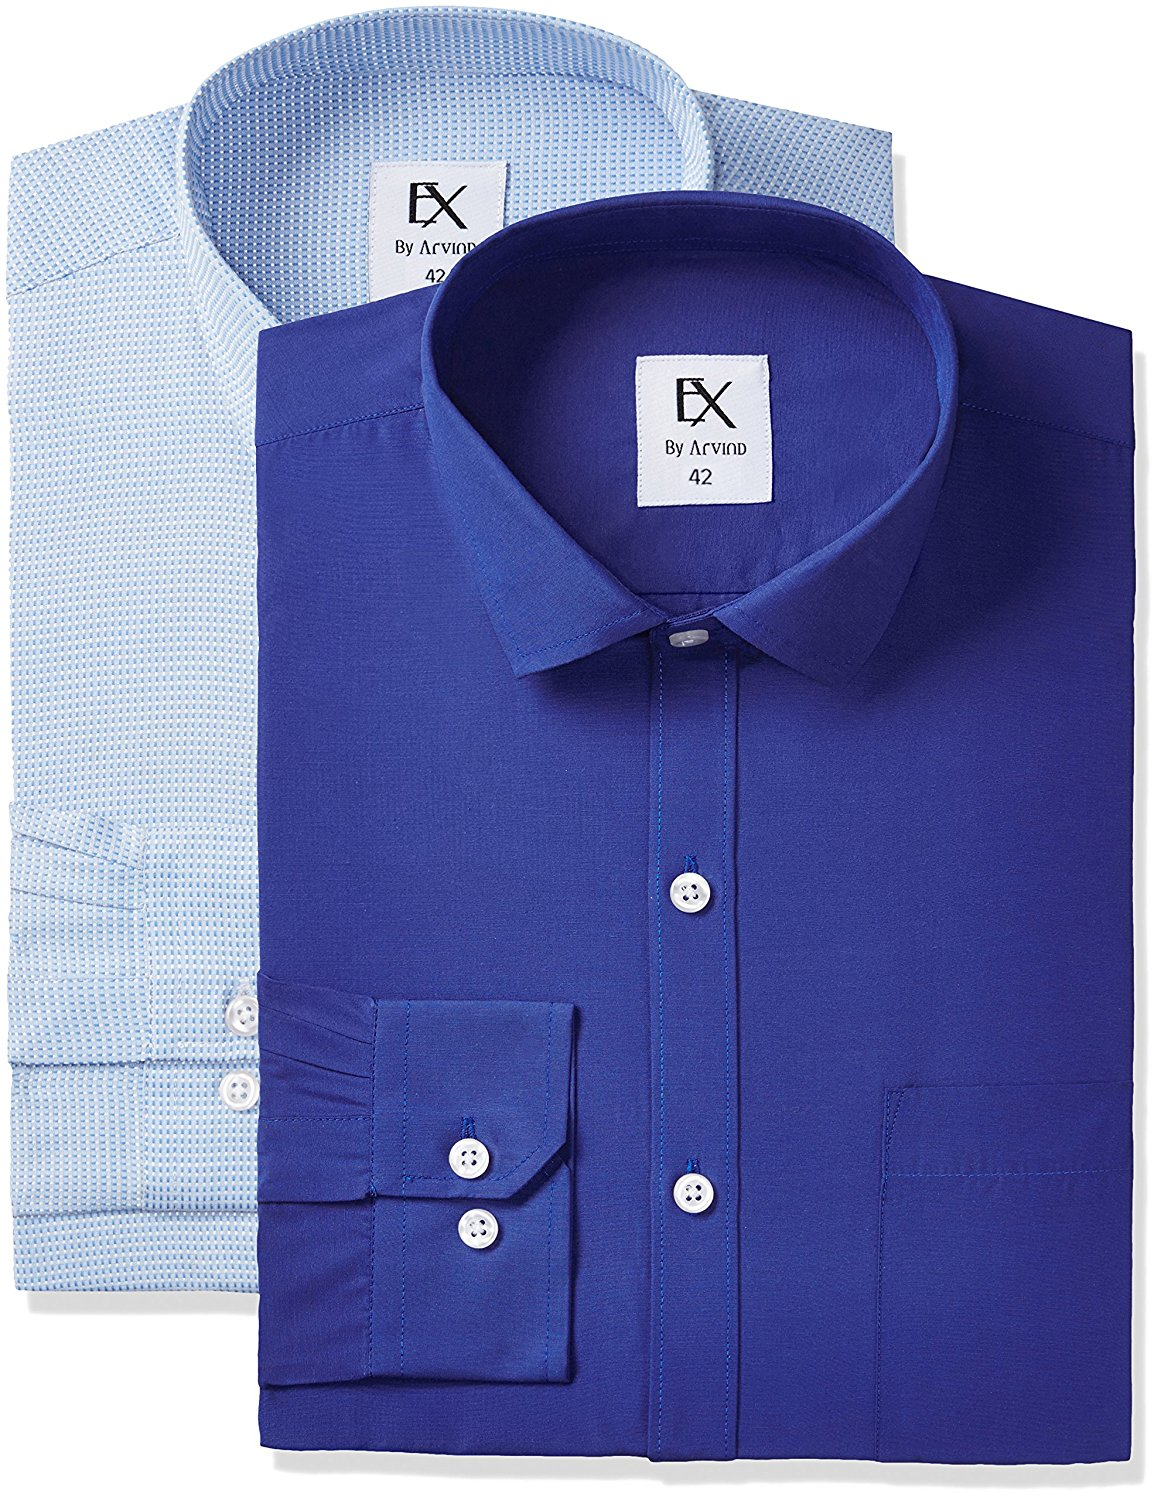 Ex by Excalibur Men's Formal Shirt (Pack of 2)